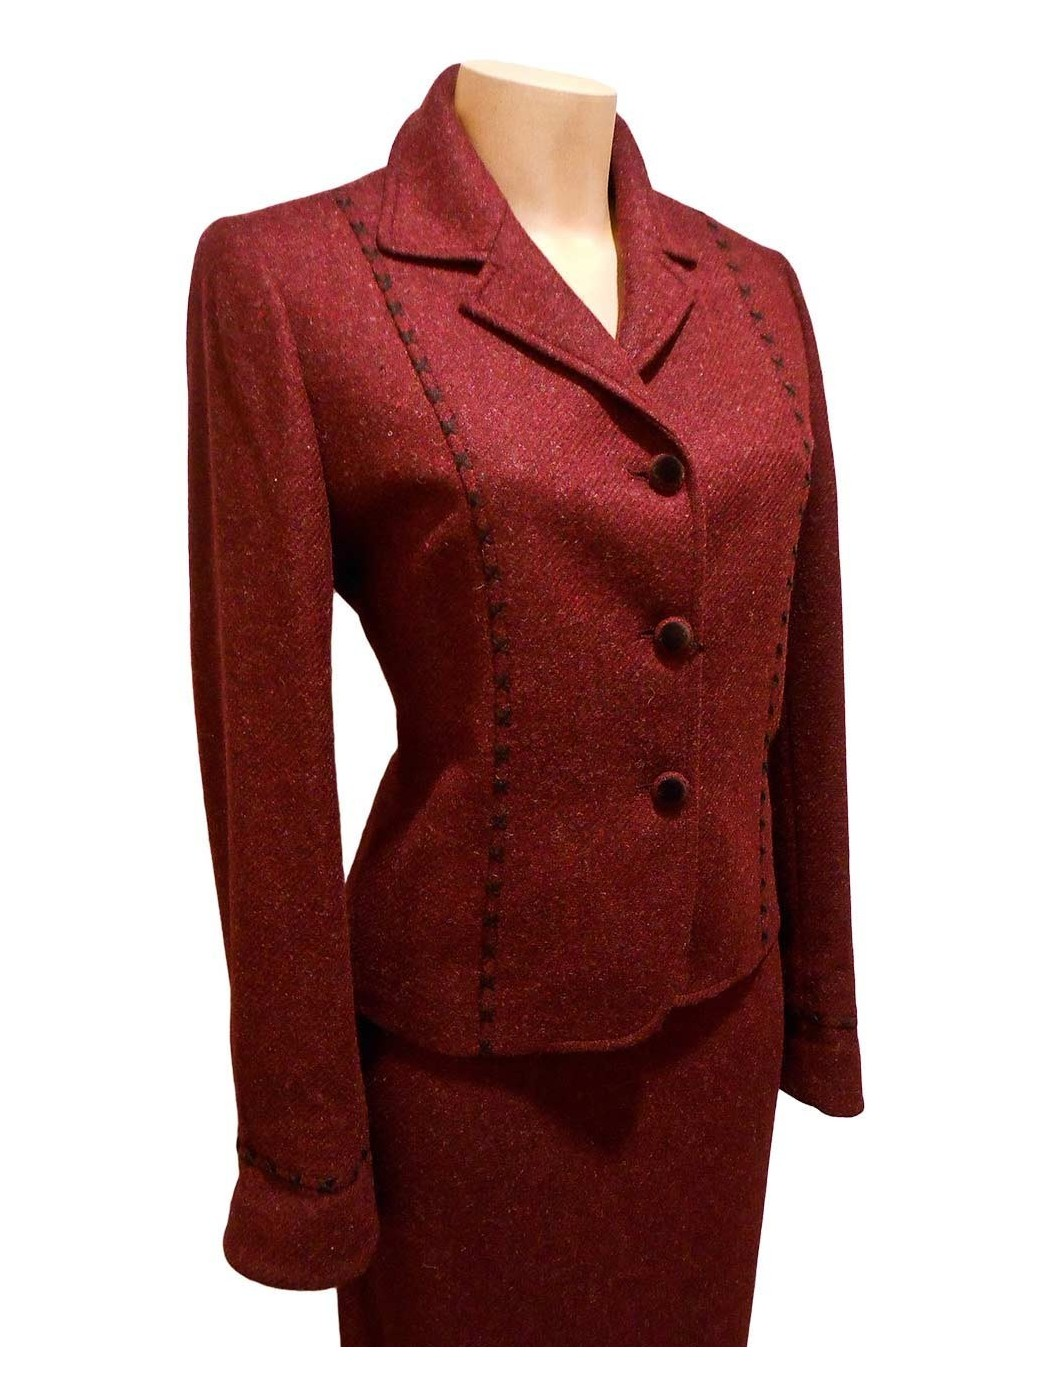 Burgundy wool suit